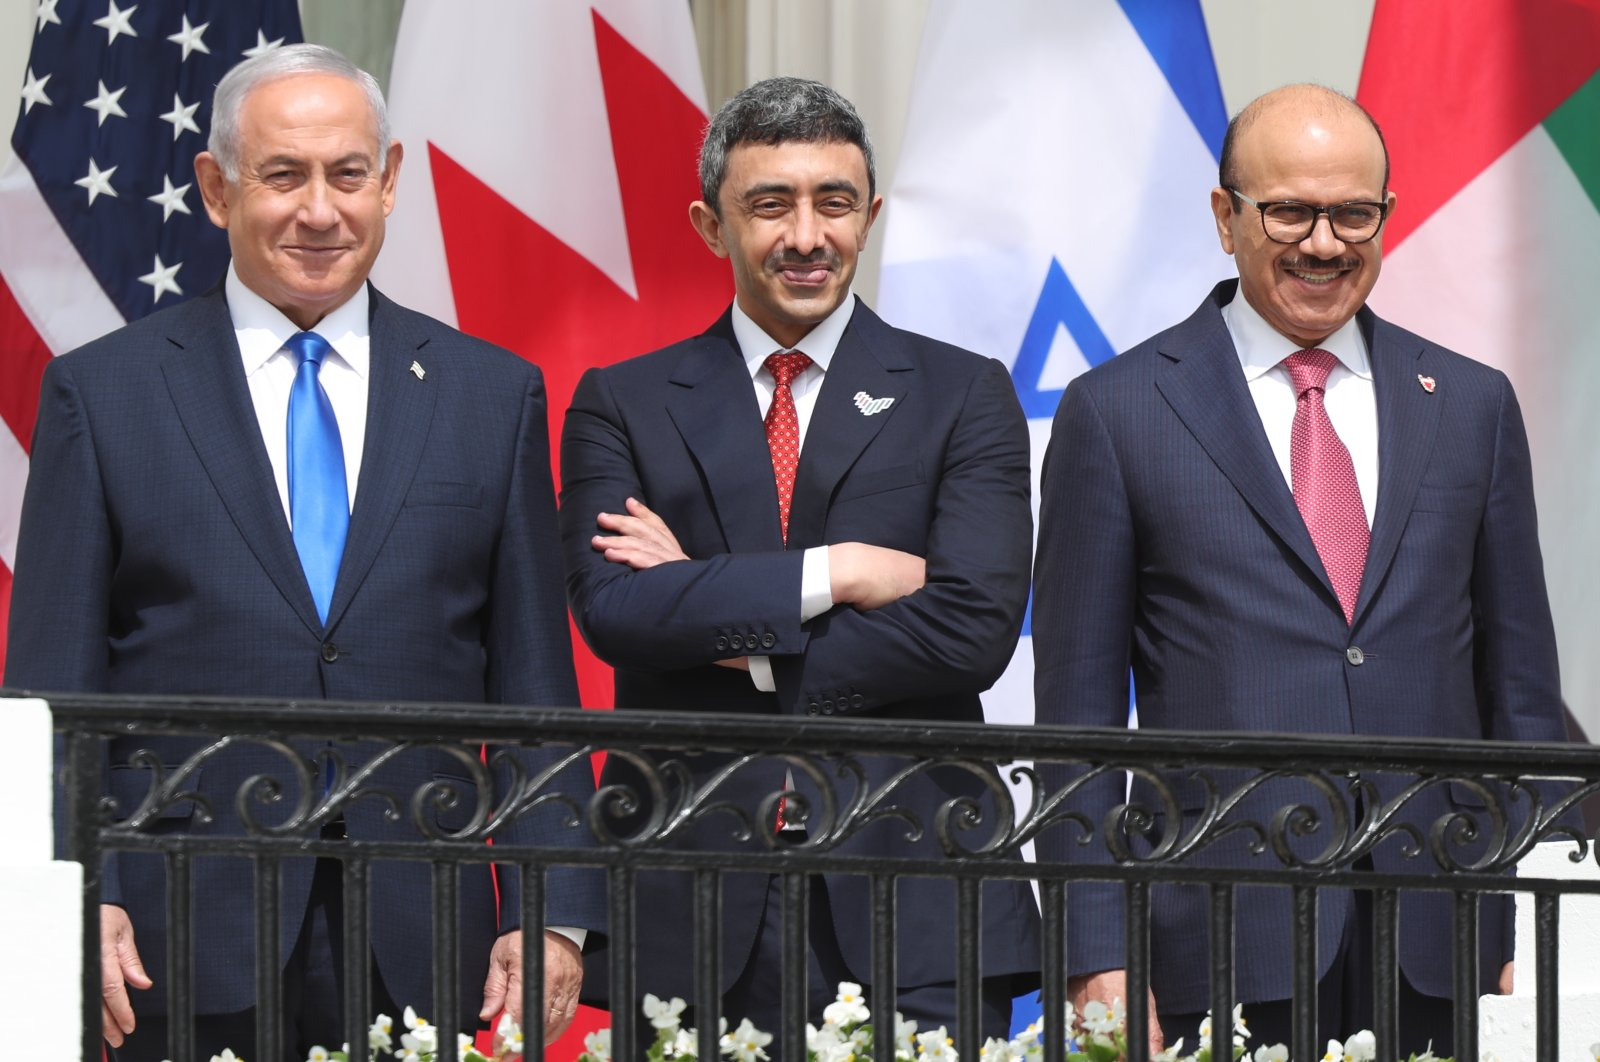 Israel Prime Minister Benjamin Netanyahu, United Arab Emirates Foreign Minister Abdullah bin Zayed Al Nahyan and Bahrain Foreign Minister Abdullatif bin Rashid Al Zayani watch during the Abraham Accords signing ceremony at the White House in Washington, D.C., Sep. 15, 2020. (Reuters Photo)